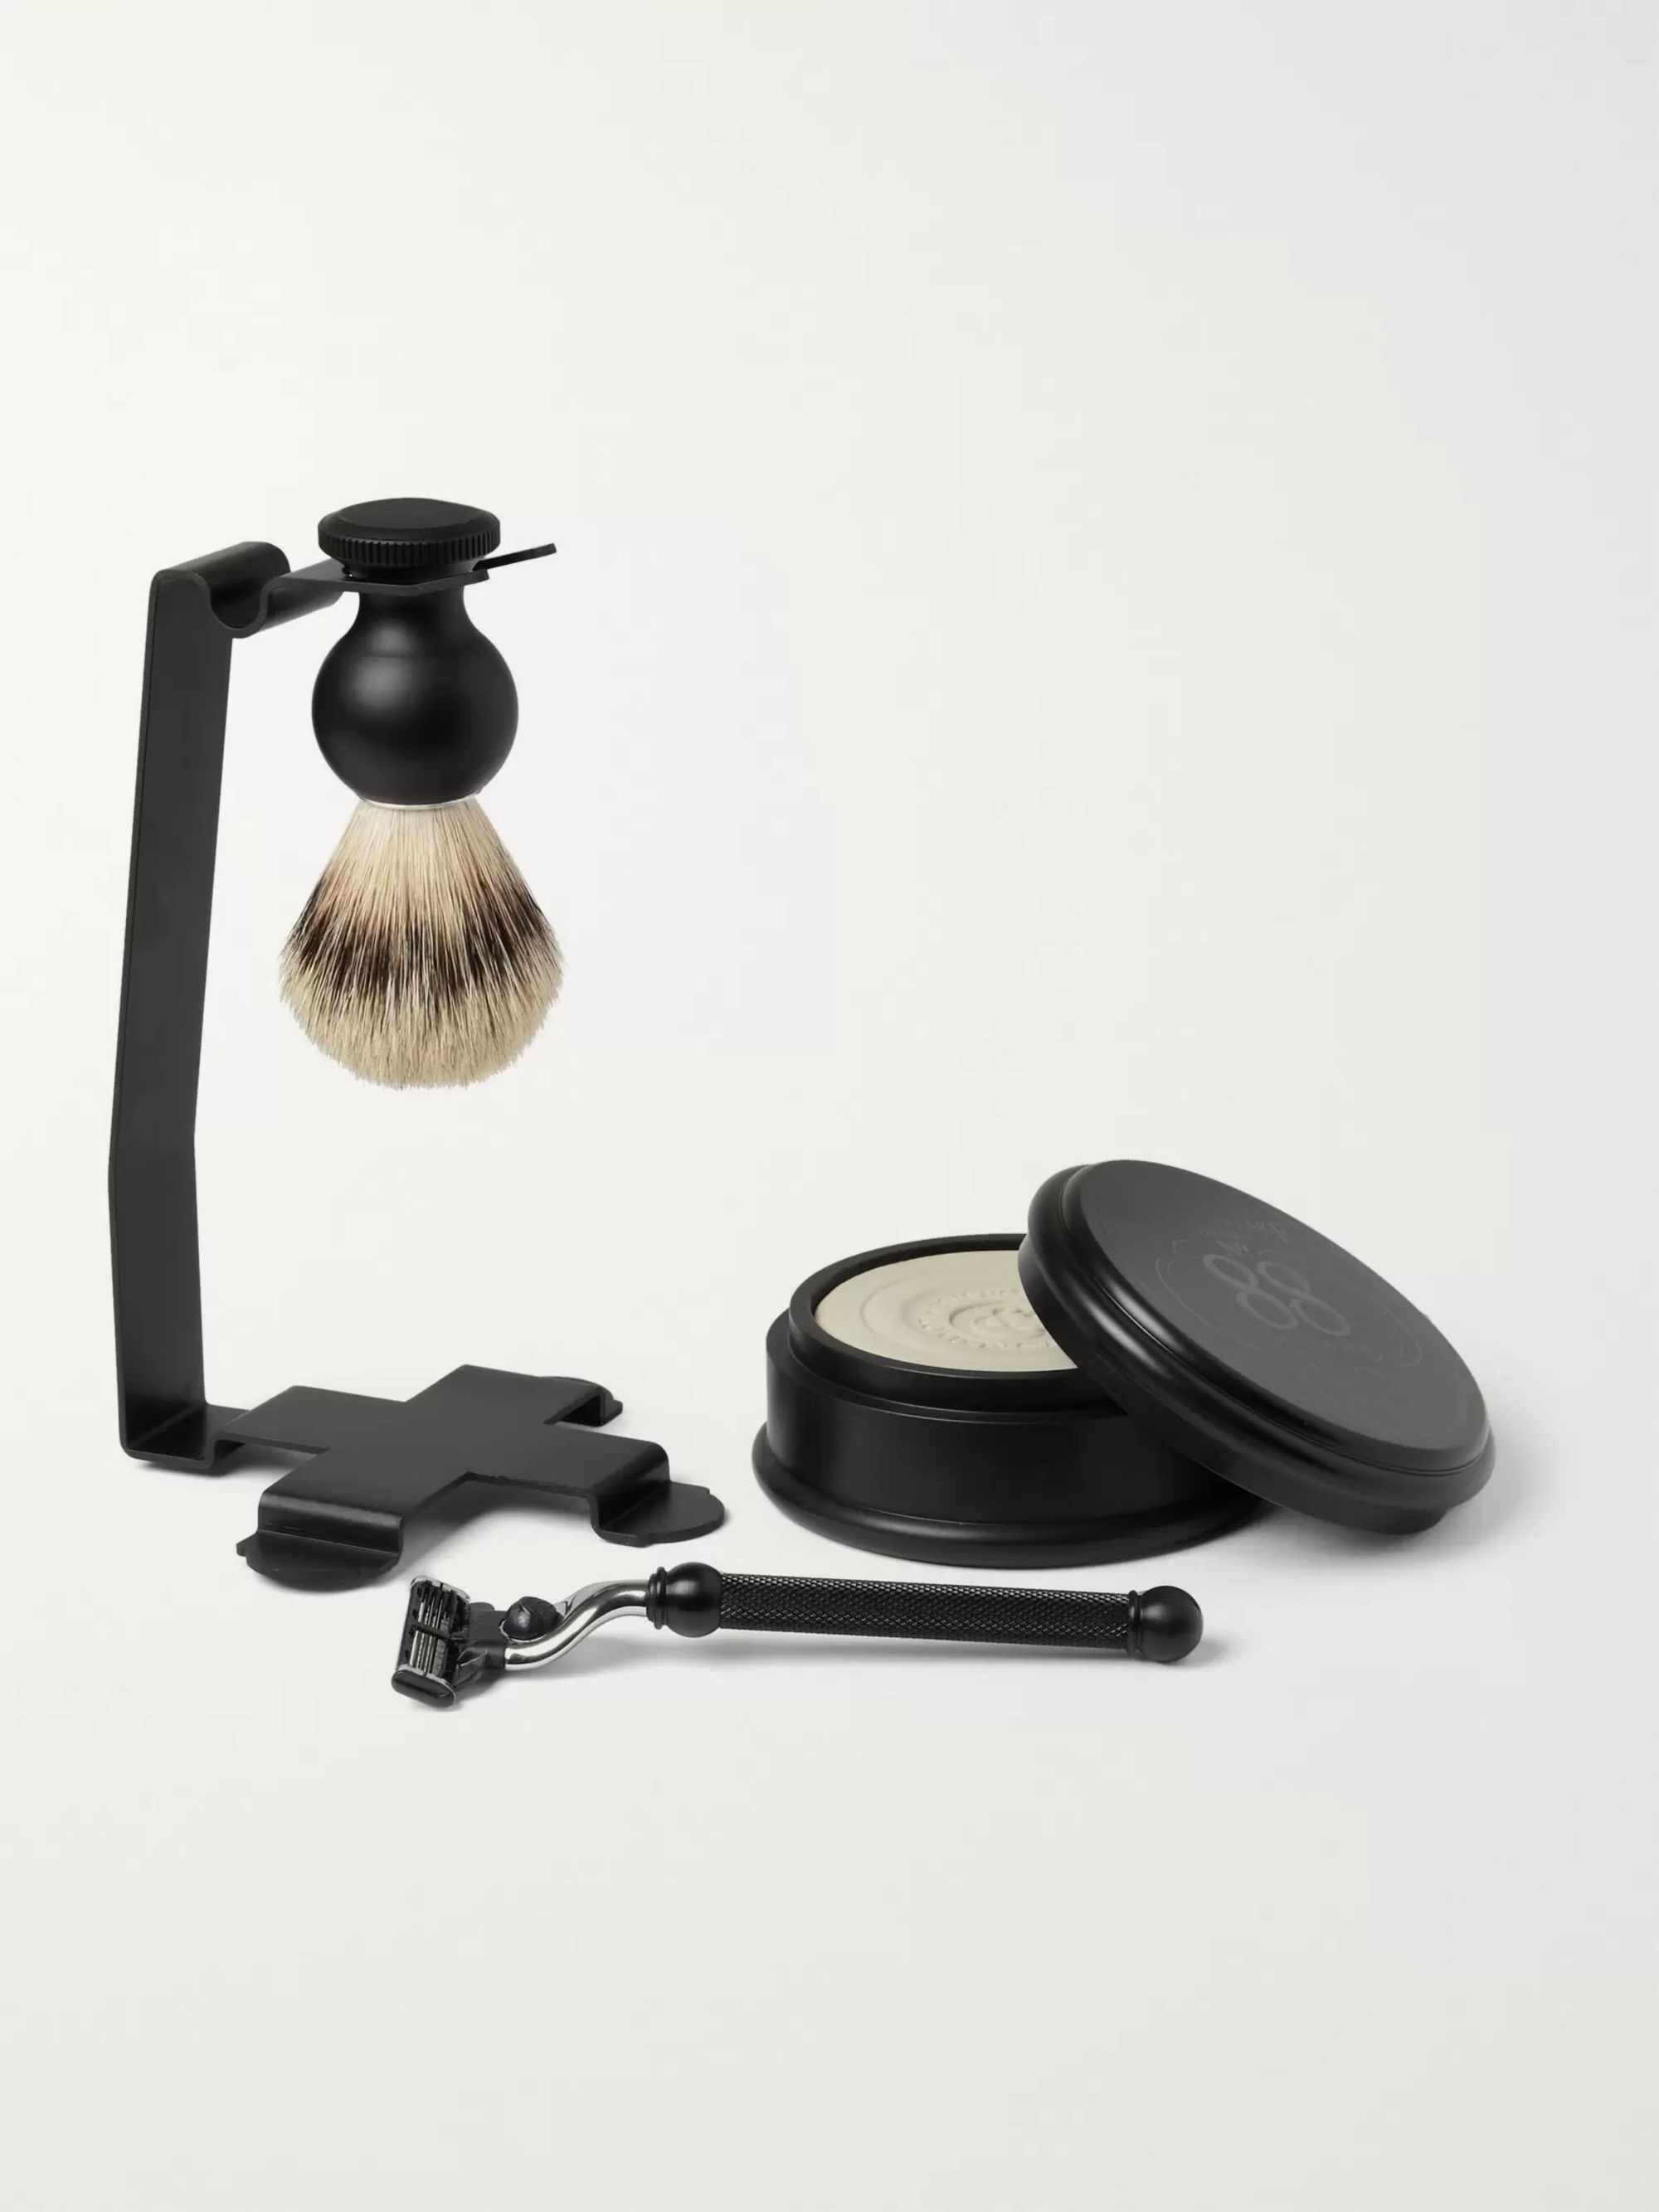 Czech & Speake No. 88 Shaving Set and Soap